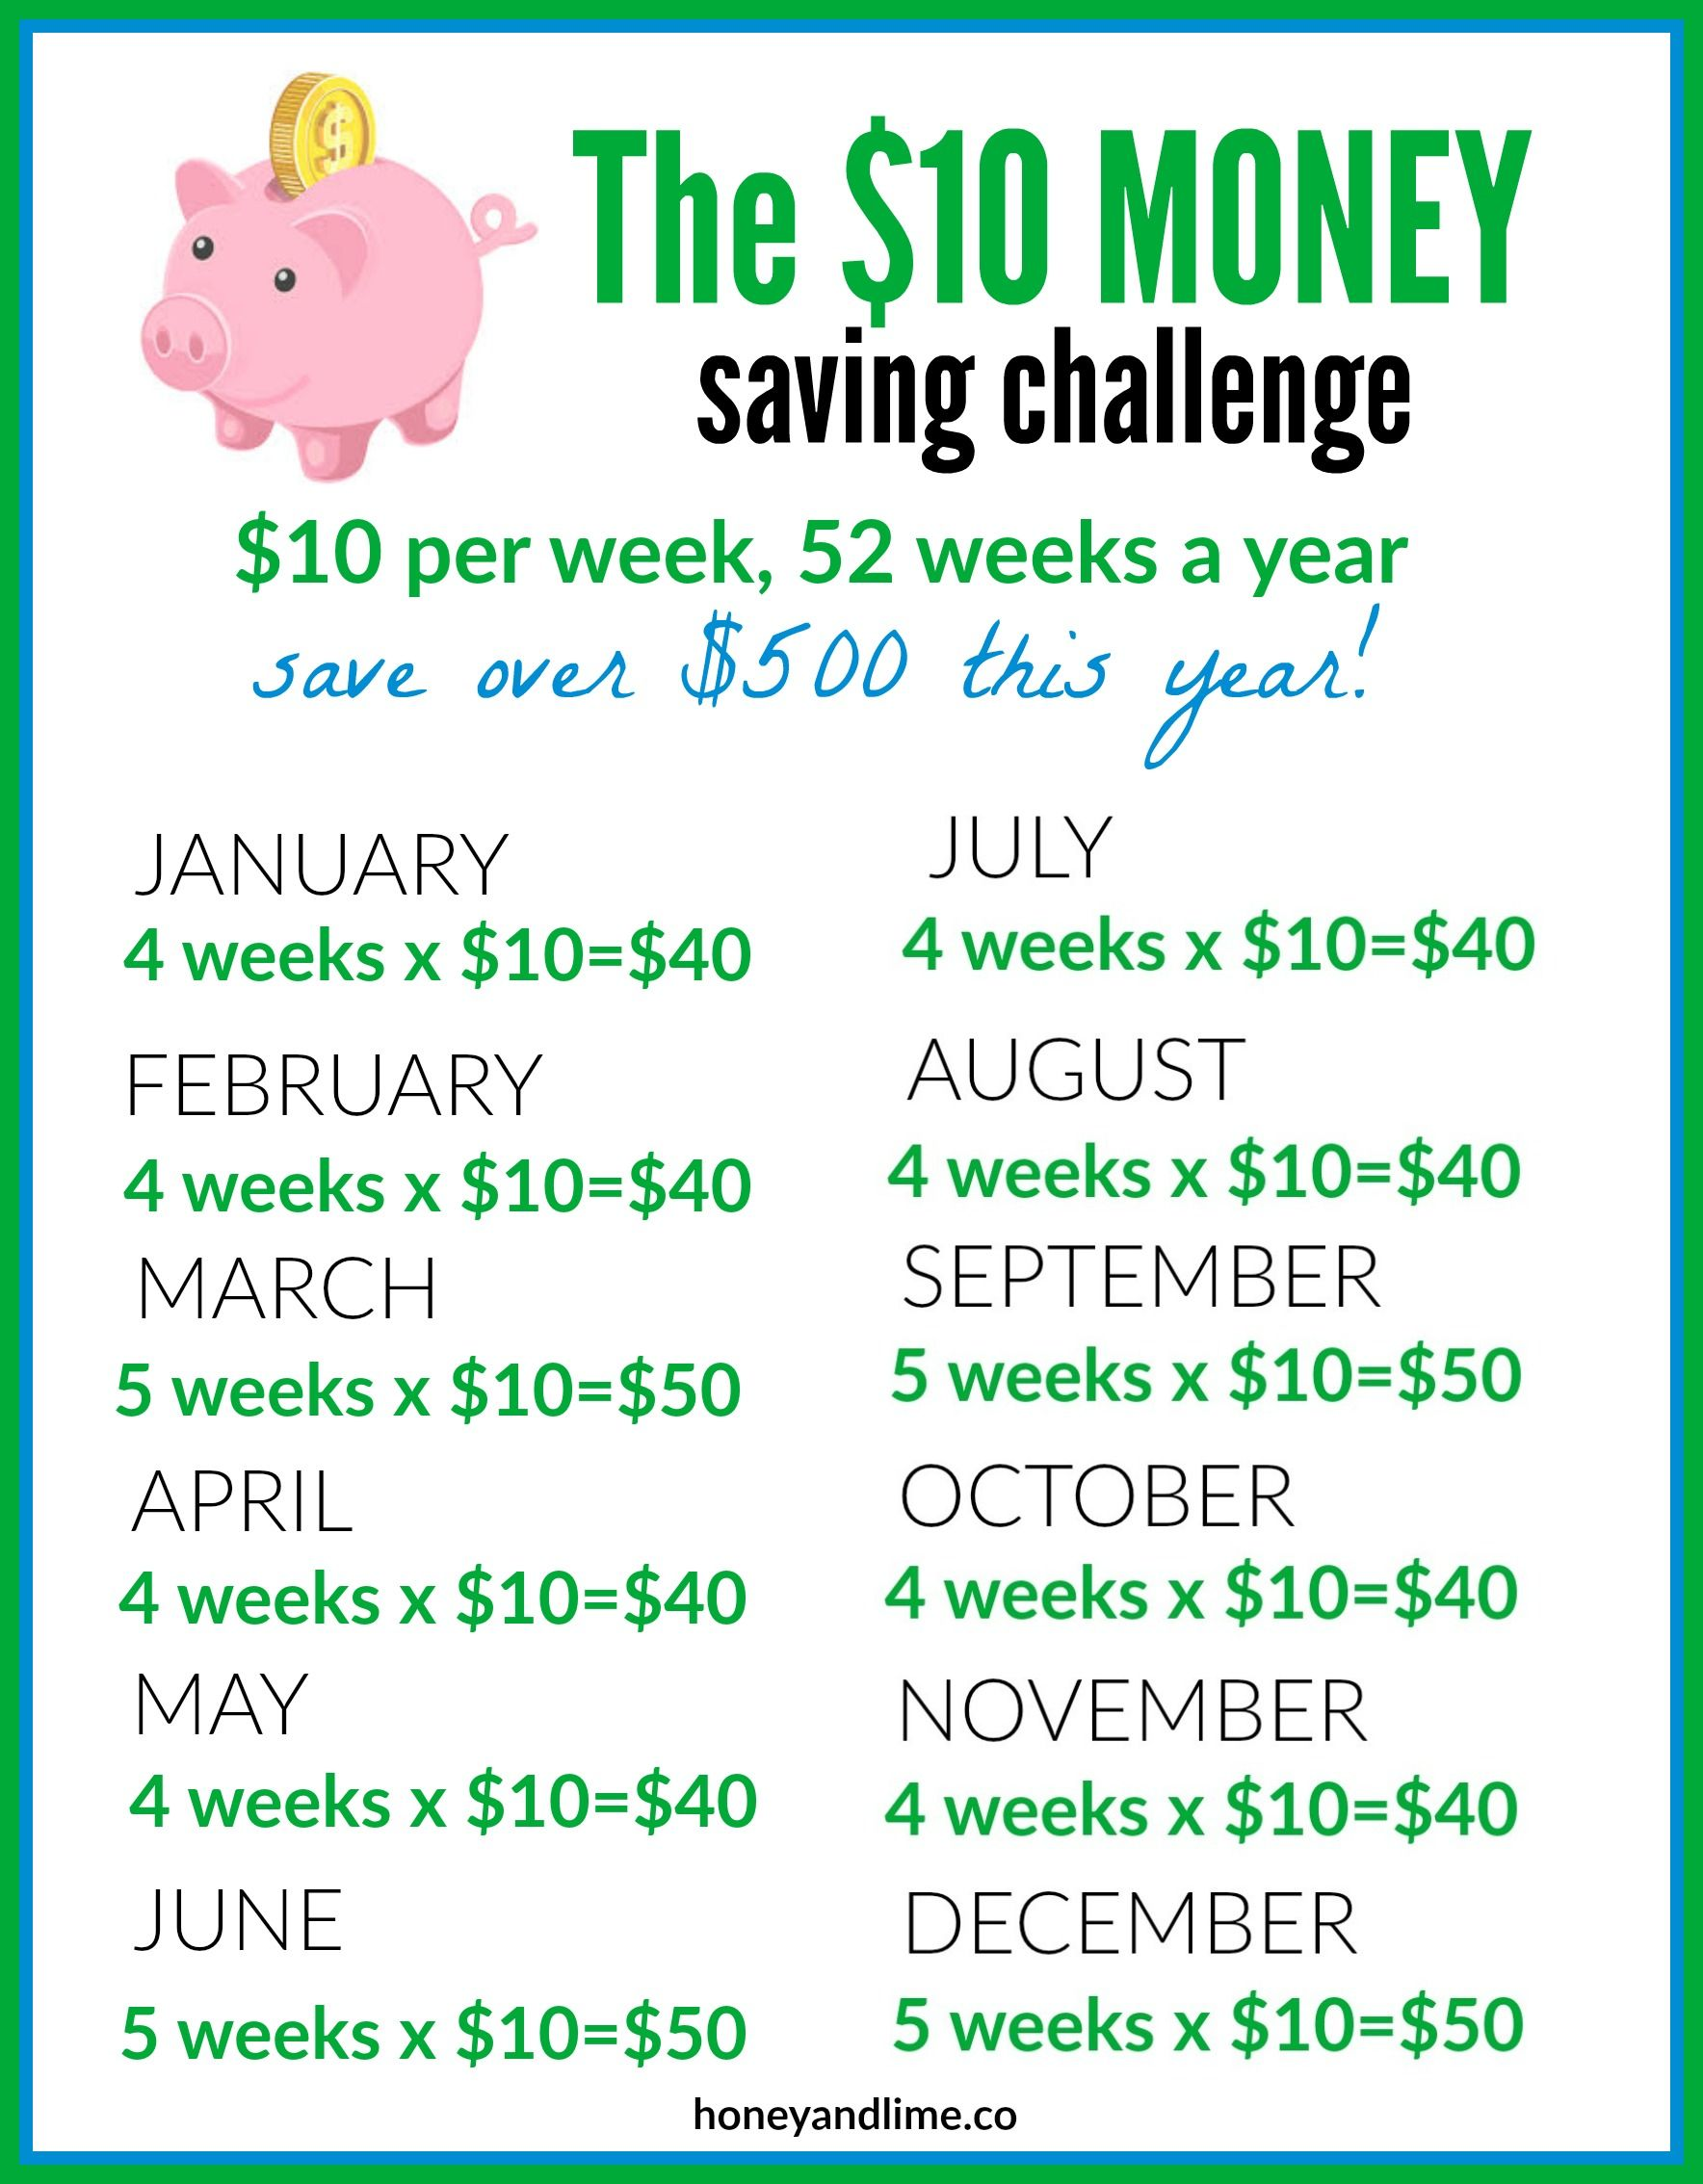 6 Monthly Money Saving Challenges To Try To Start Off The